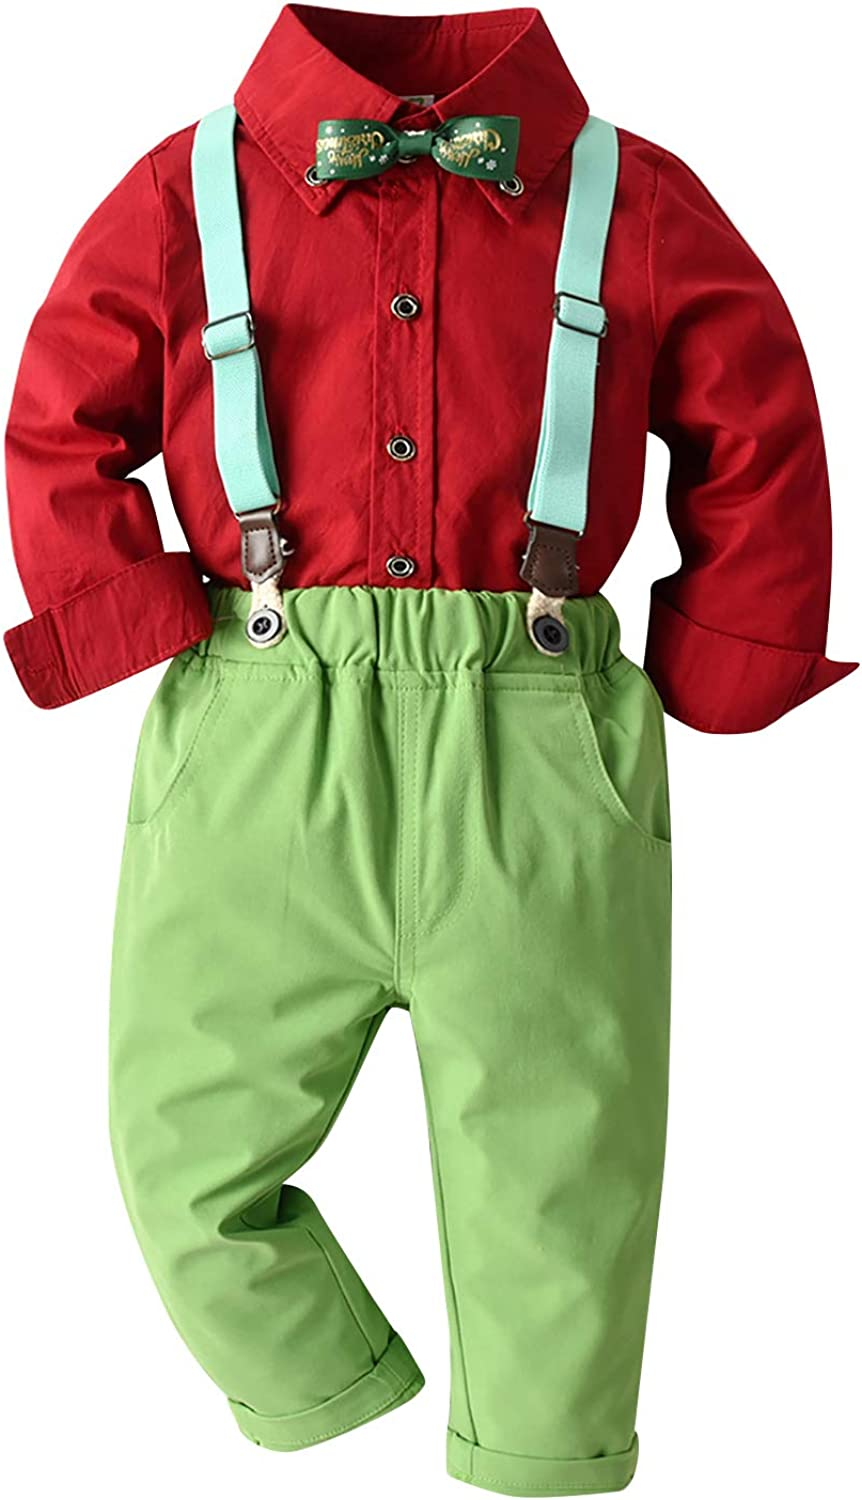 Ranking TOP6 Christmas Holiday San Diego Mall Outfits Newborn Baby Party Toddler Xmas Girls